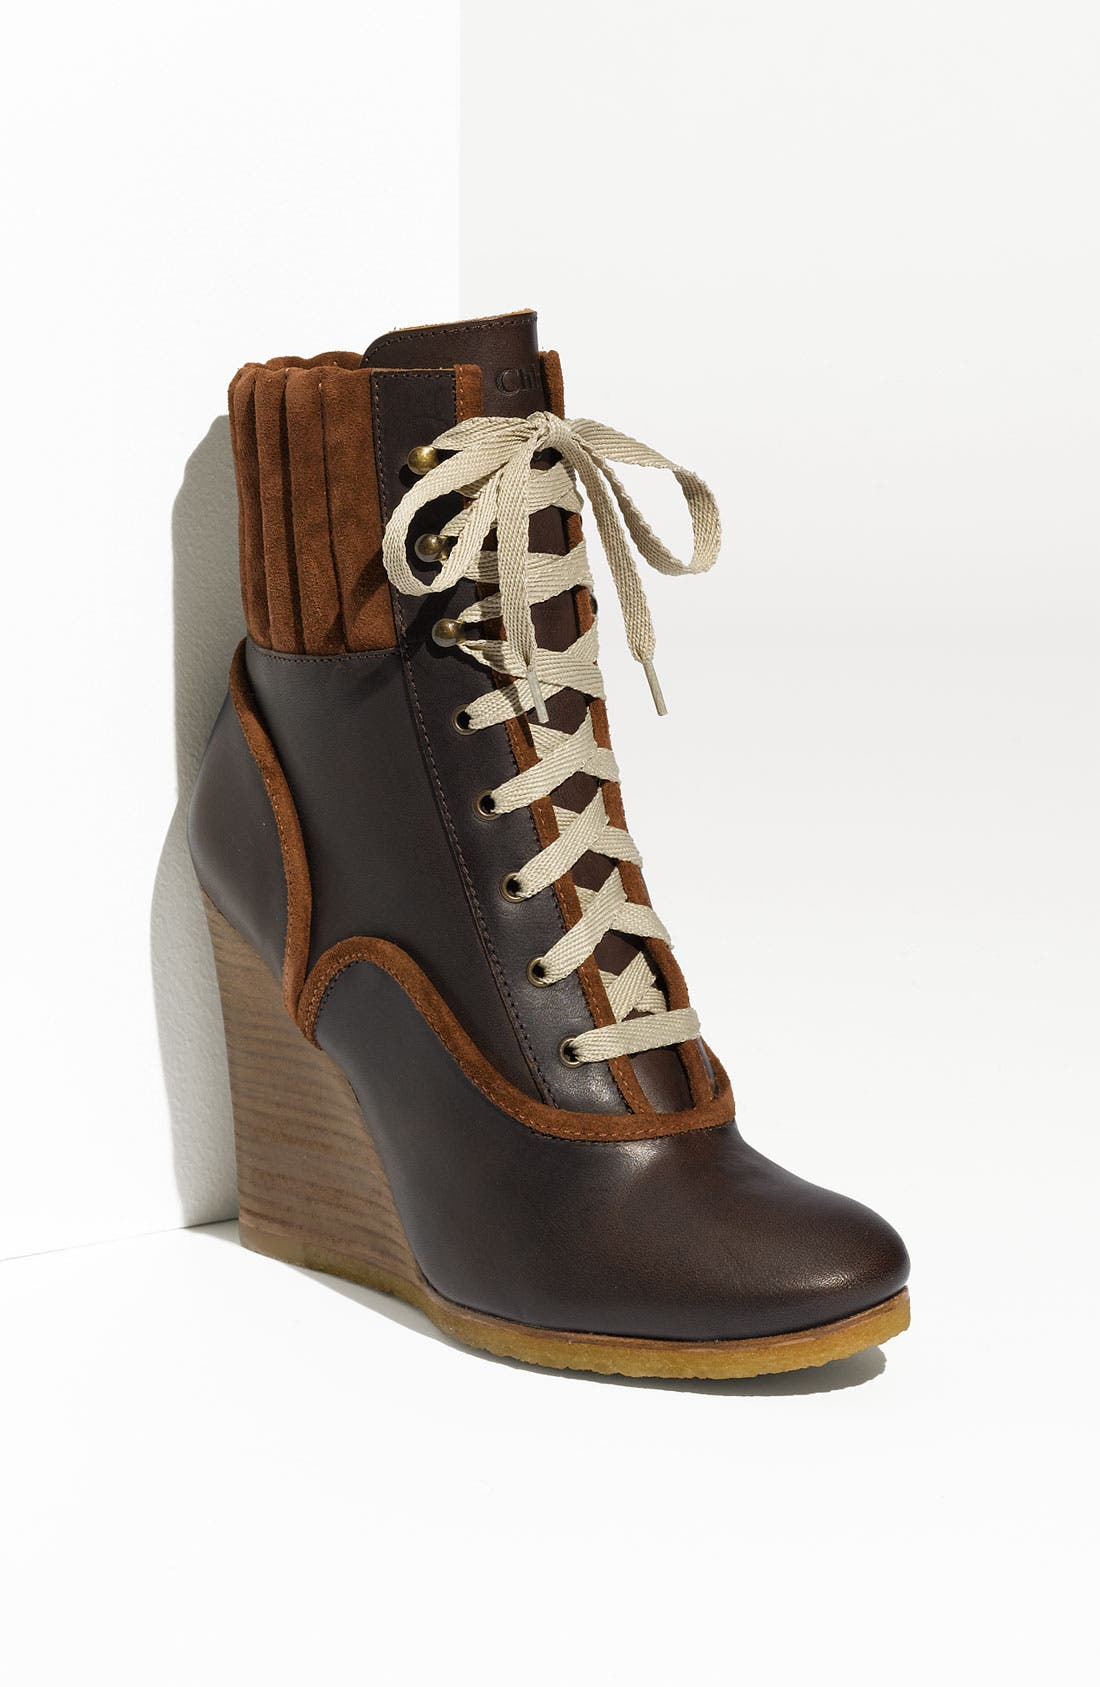 Alternate Image 1 Selected - Chloé Wedge Bootie